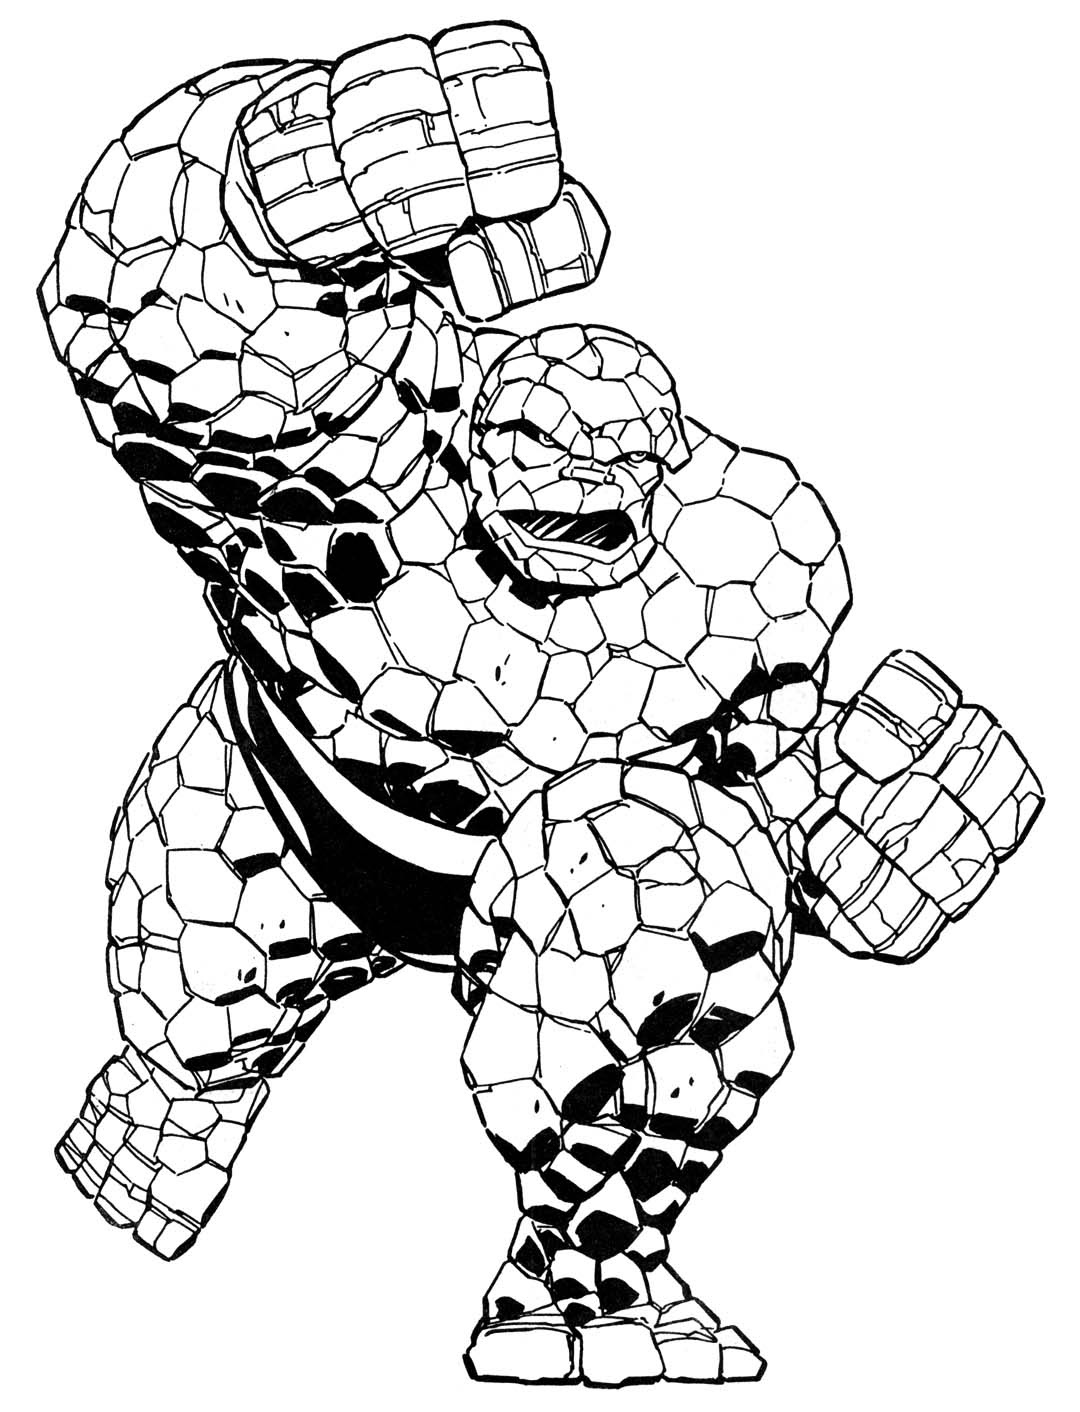 Coloring book - Marvel Super heroes